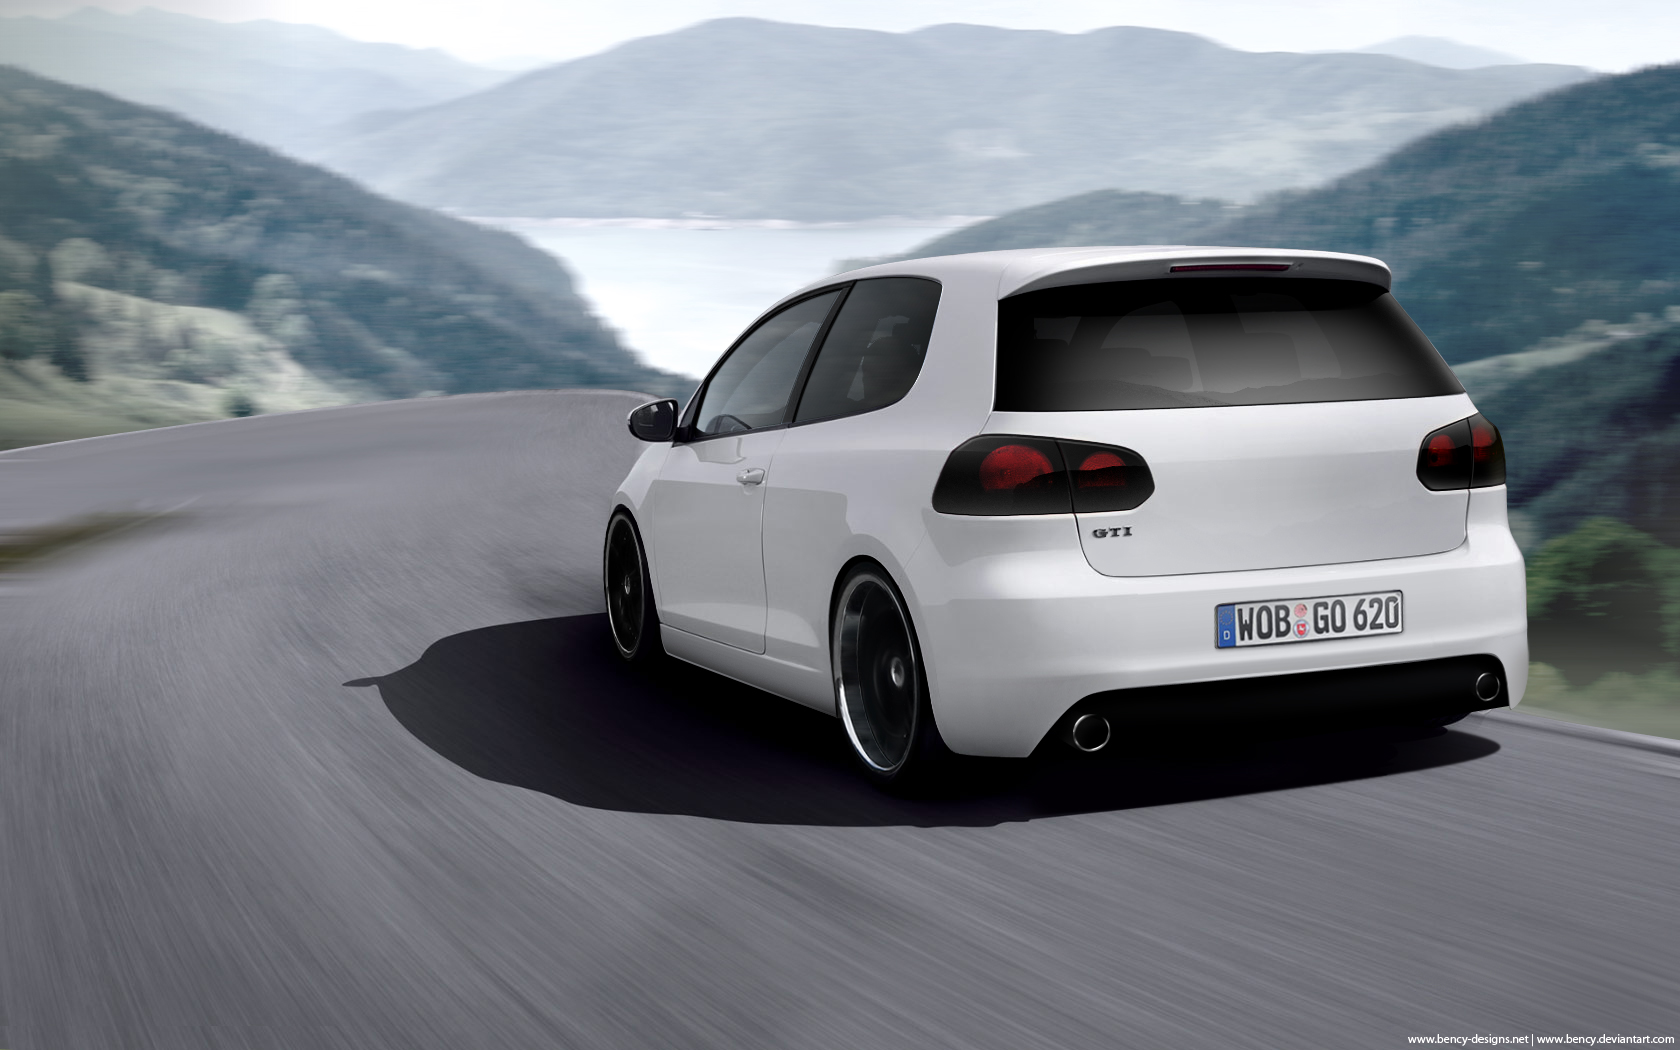 vw golf vi gti by benjamin dandic on deviantart. Black Bedroom Furniture Sets. Home Design Ideas